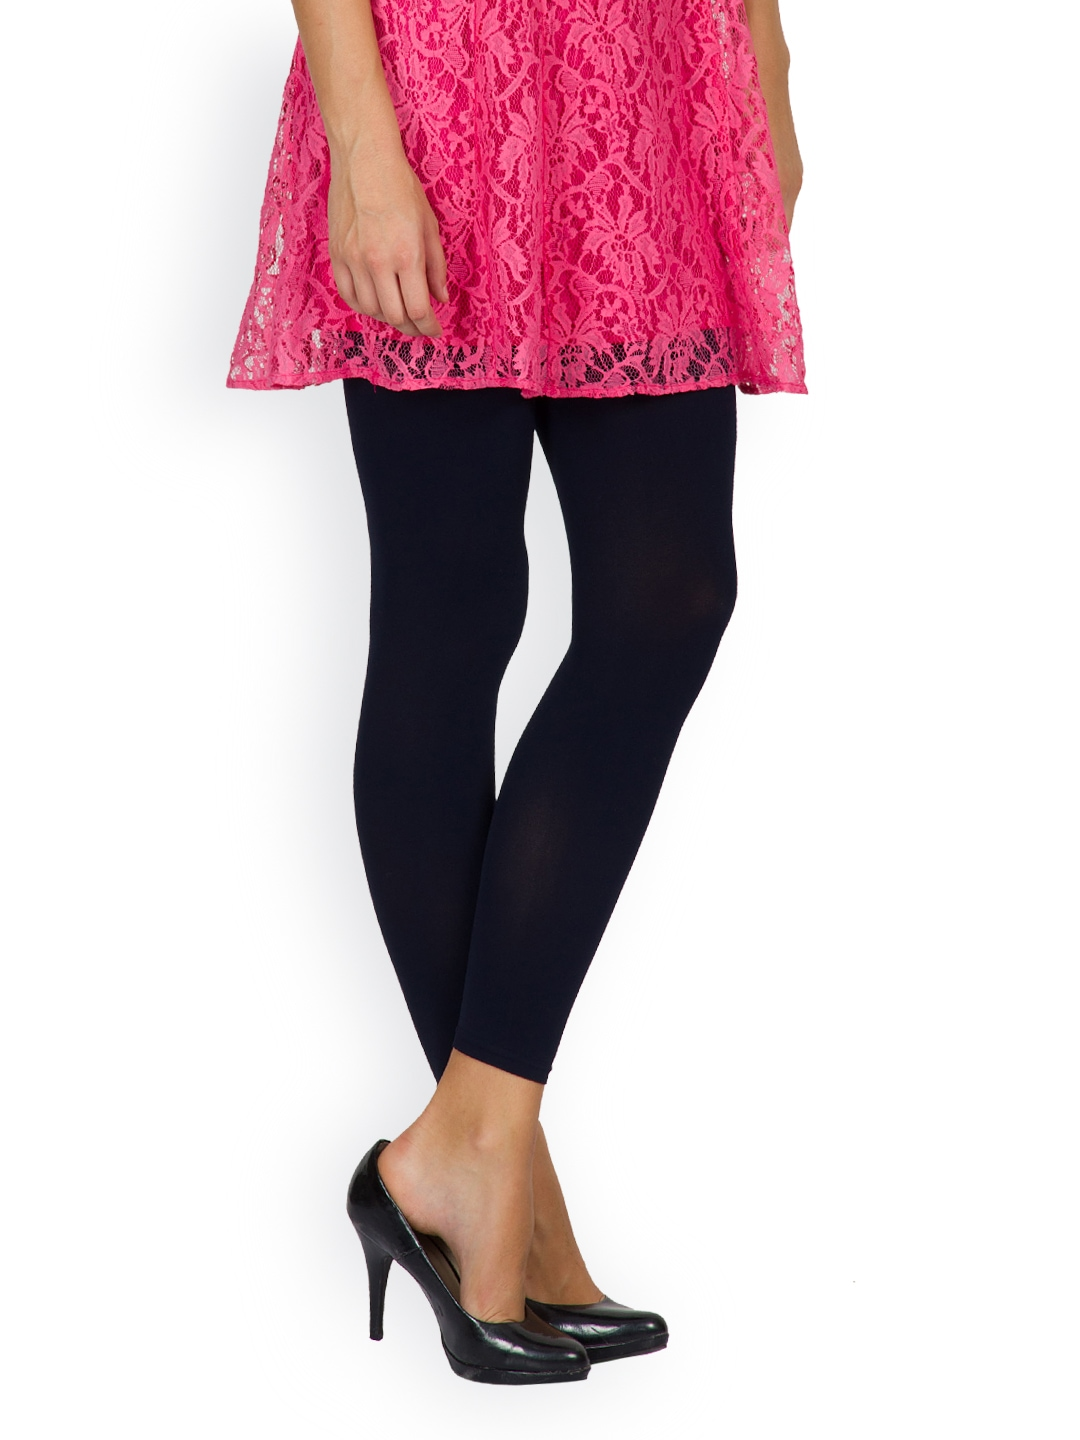 Shop eBay for great deals on Women's Blue Leggings. You'll find new or used products in Women's Blue Leggings on eBay. Free shipping on selected items.